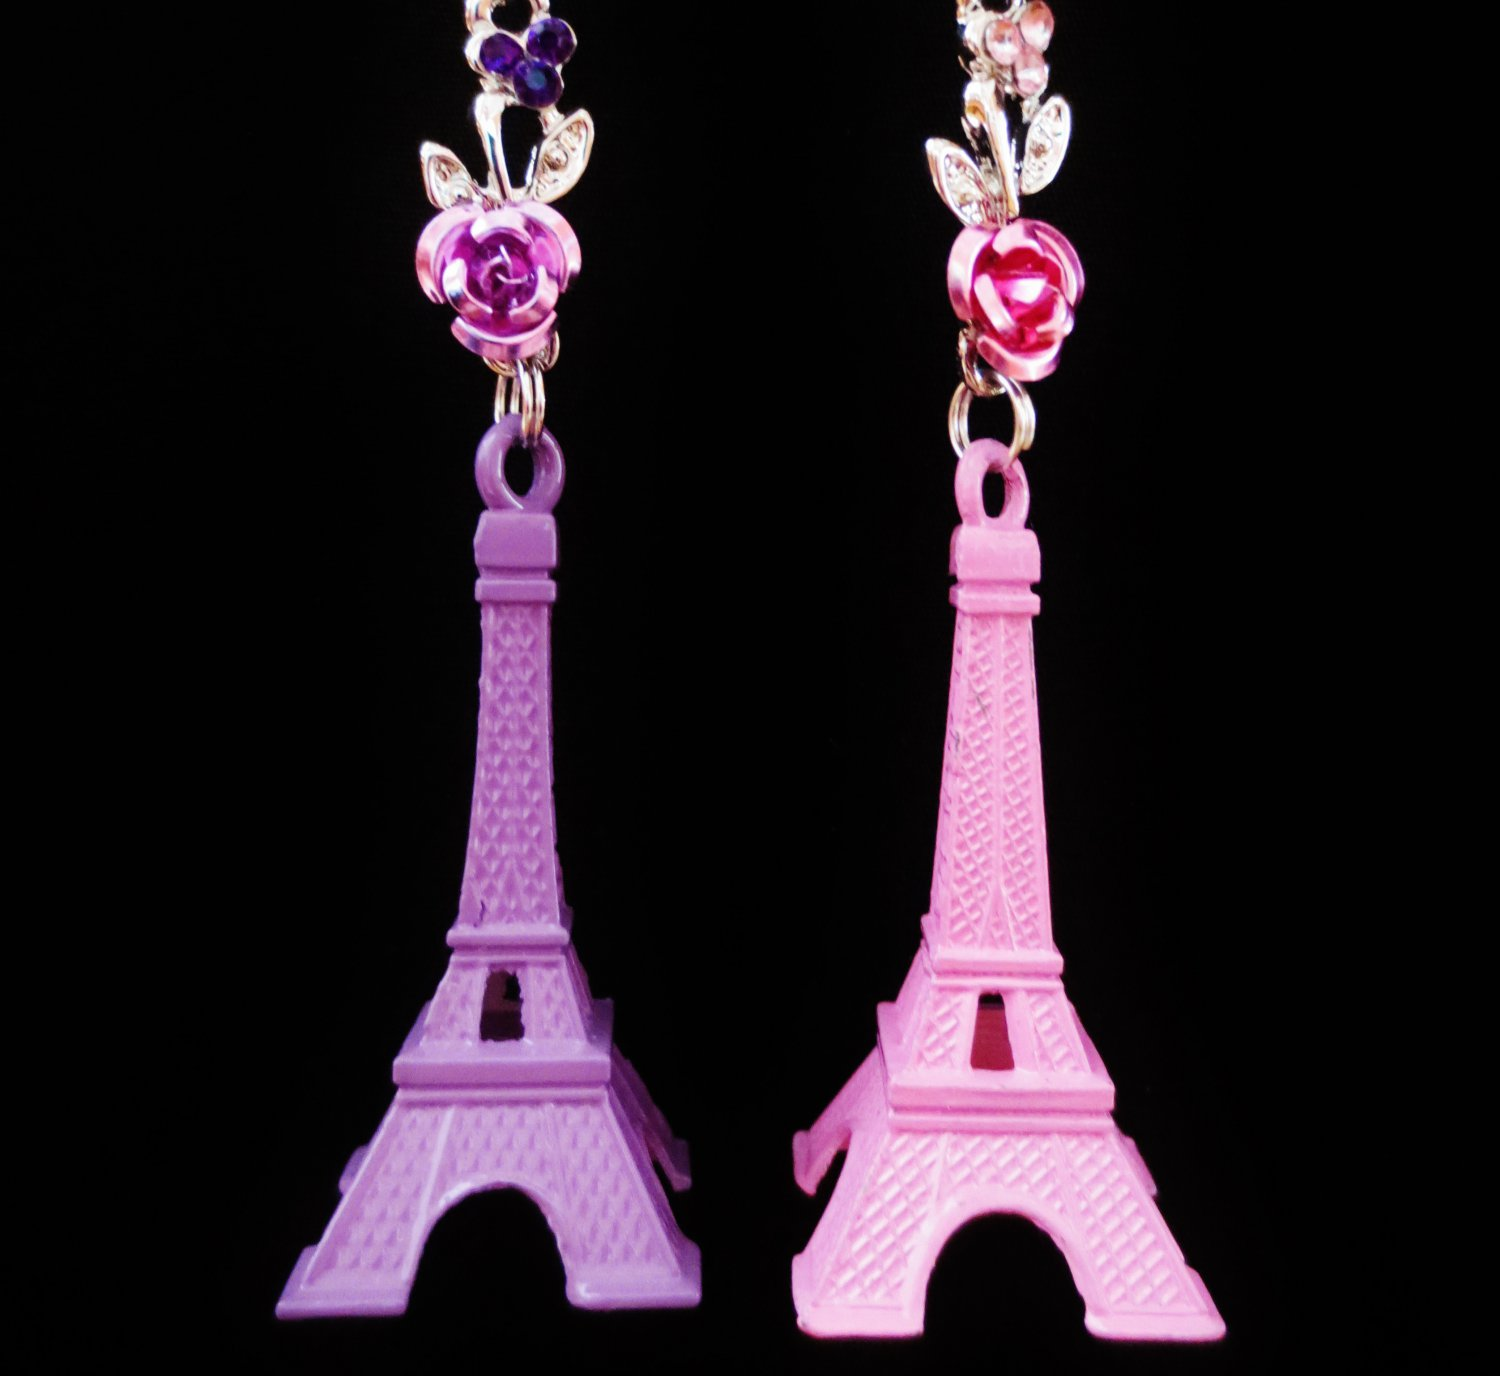 Eiffel Tower Paris Landmark Pink Purple Ceiling Fan Light Pull Chain